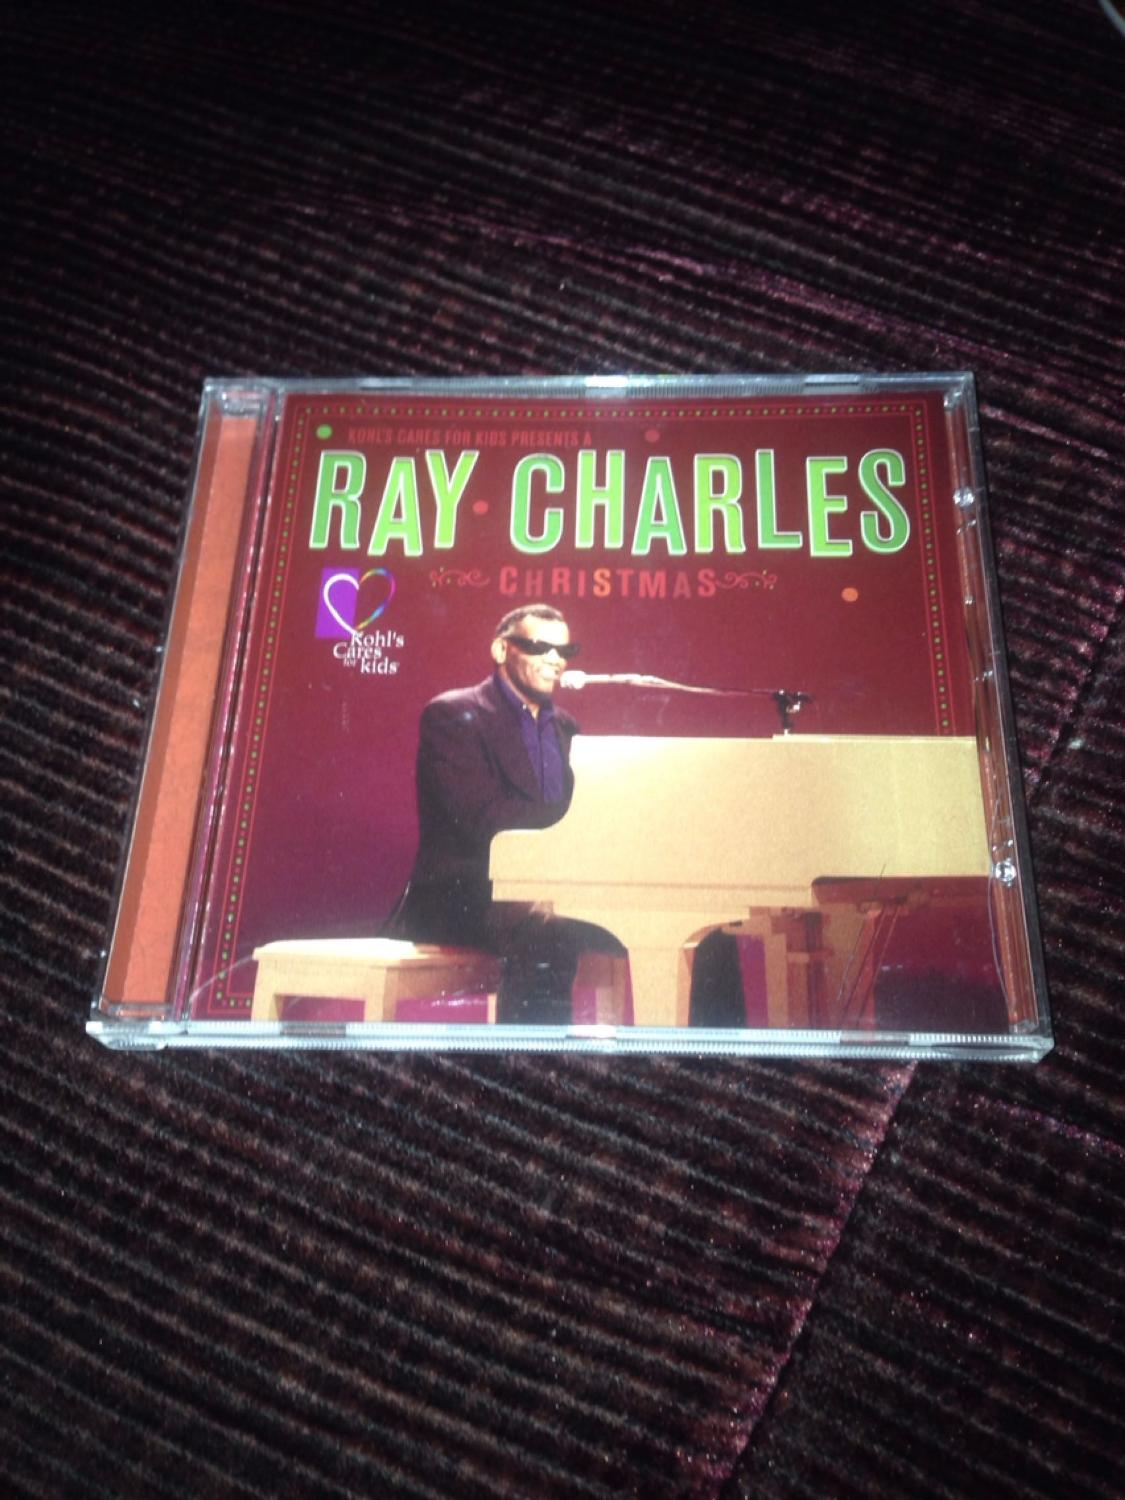 Ray Charles Christmas.Ray Charles Christmas Music Cd Song List Comments Below